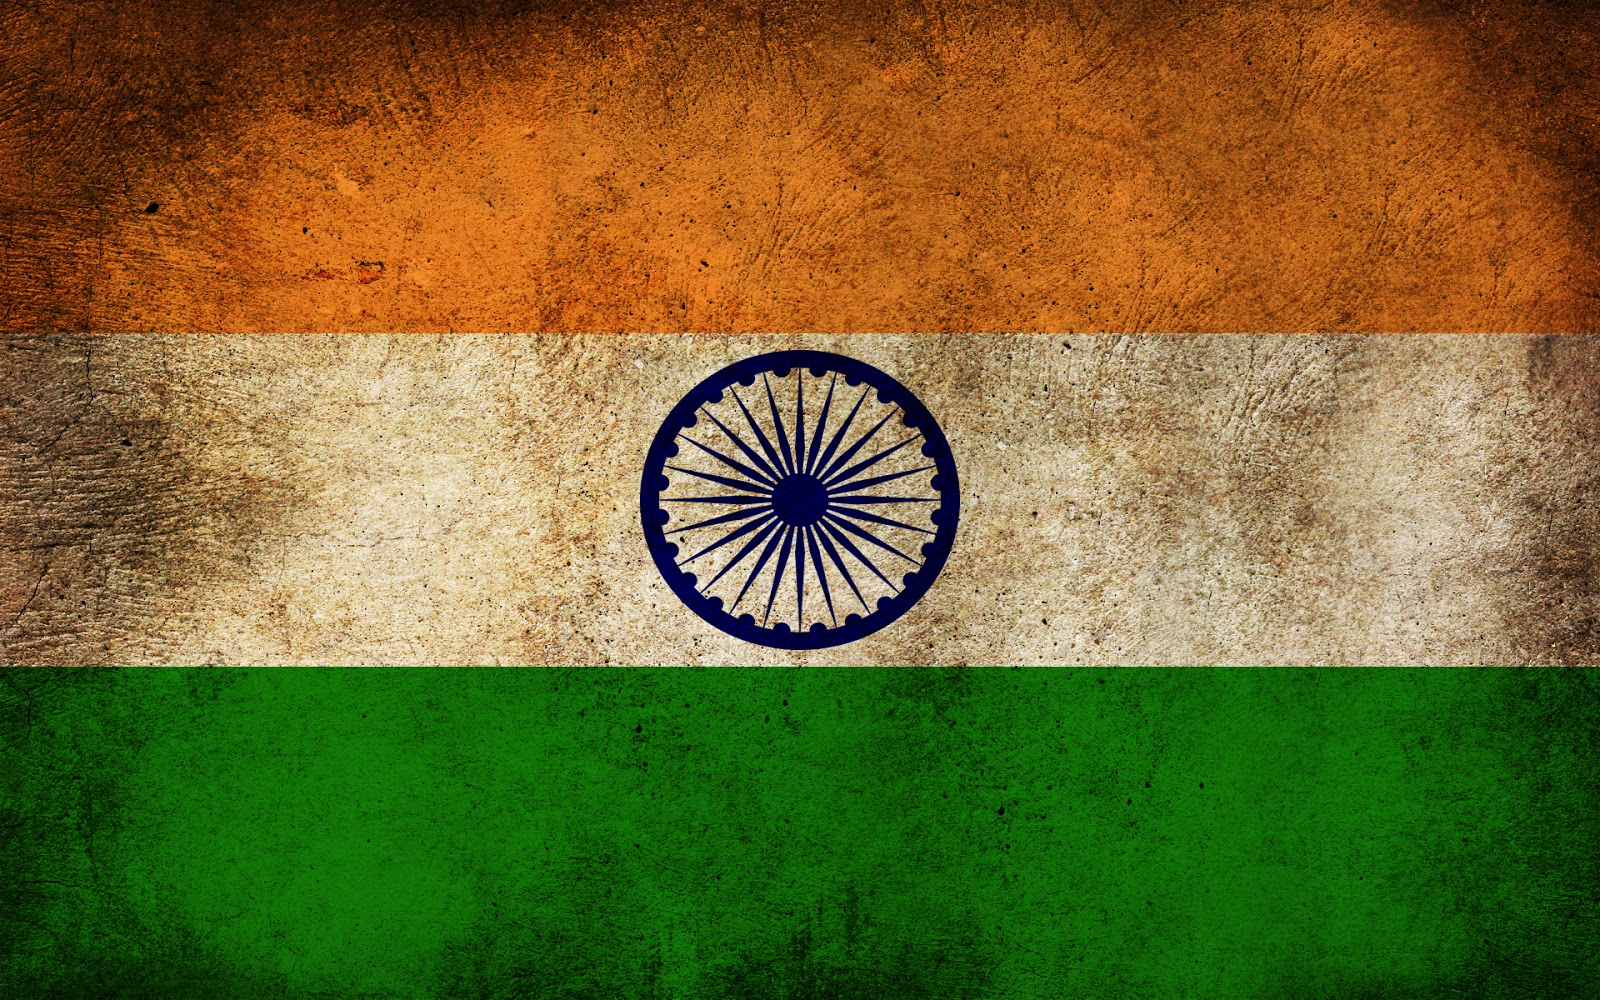 Indian Flag Hd Wallpaper: Top Best Hd Happy Republic Day India 26 January 2013 High